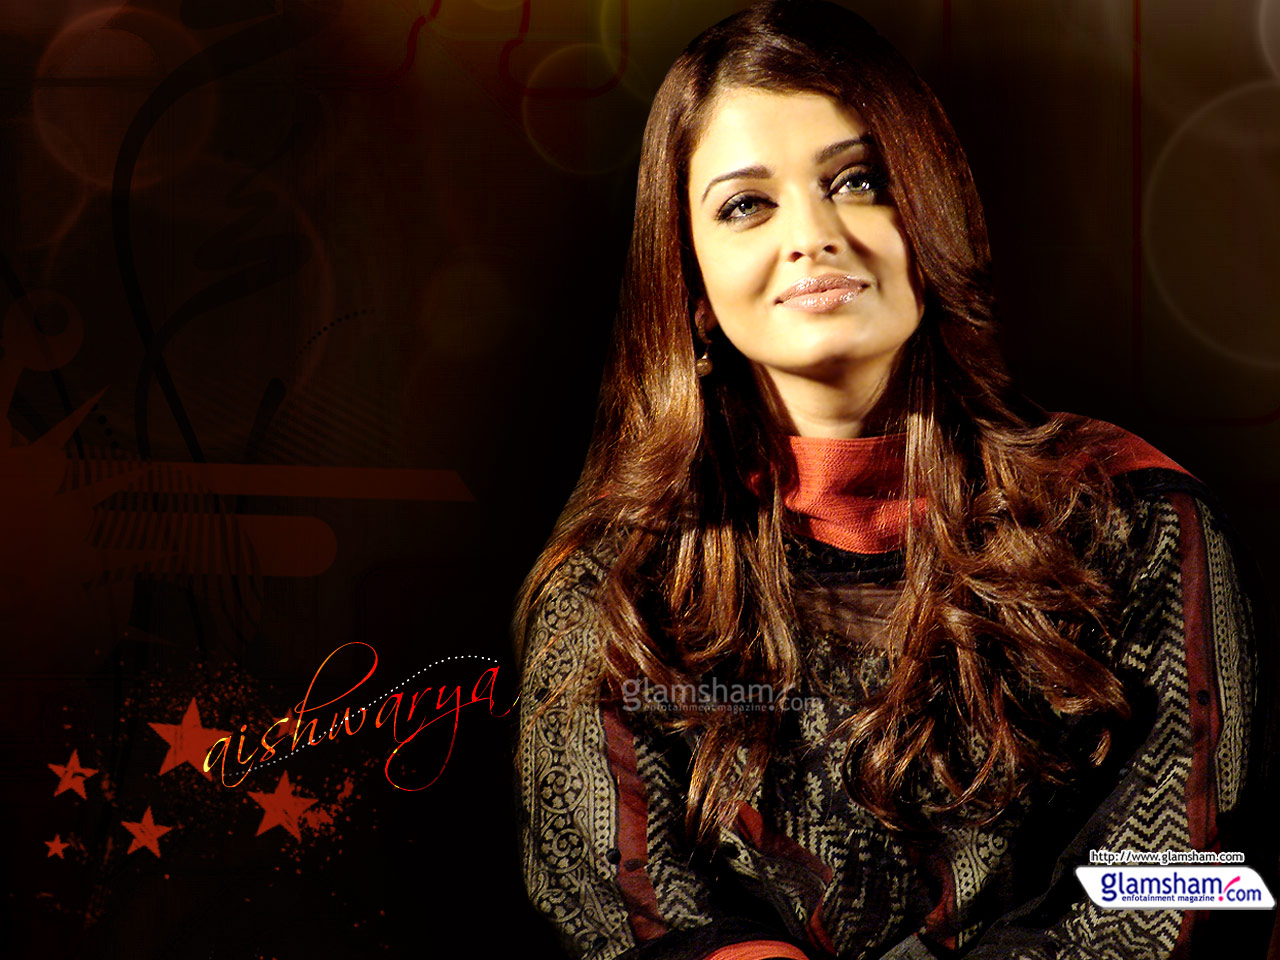 Download Aishwarya Rai Images, Wallpapers in Full HD Quality 1280x960